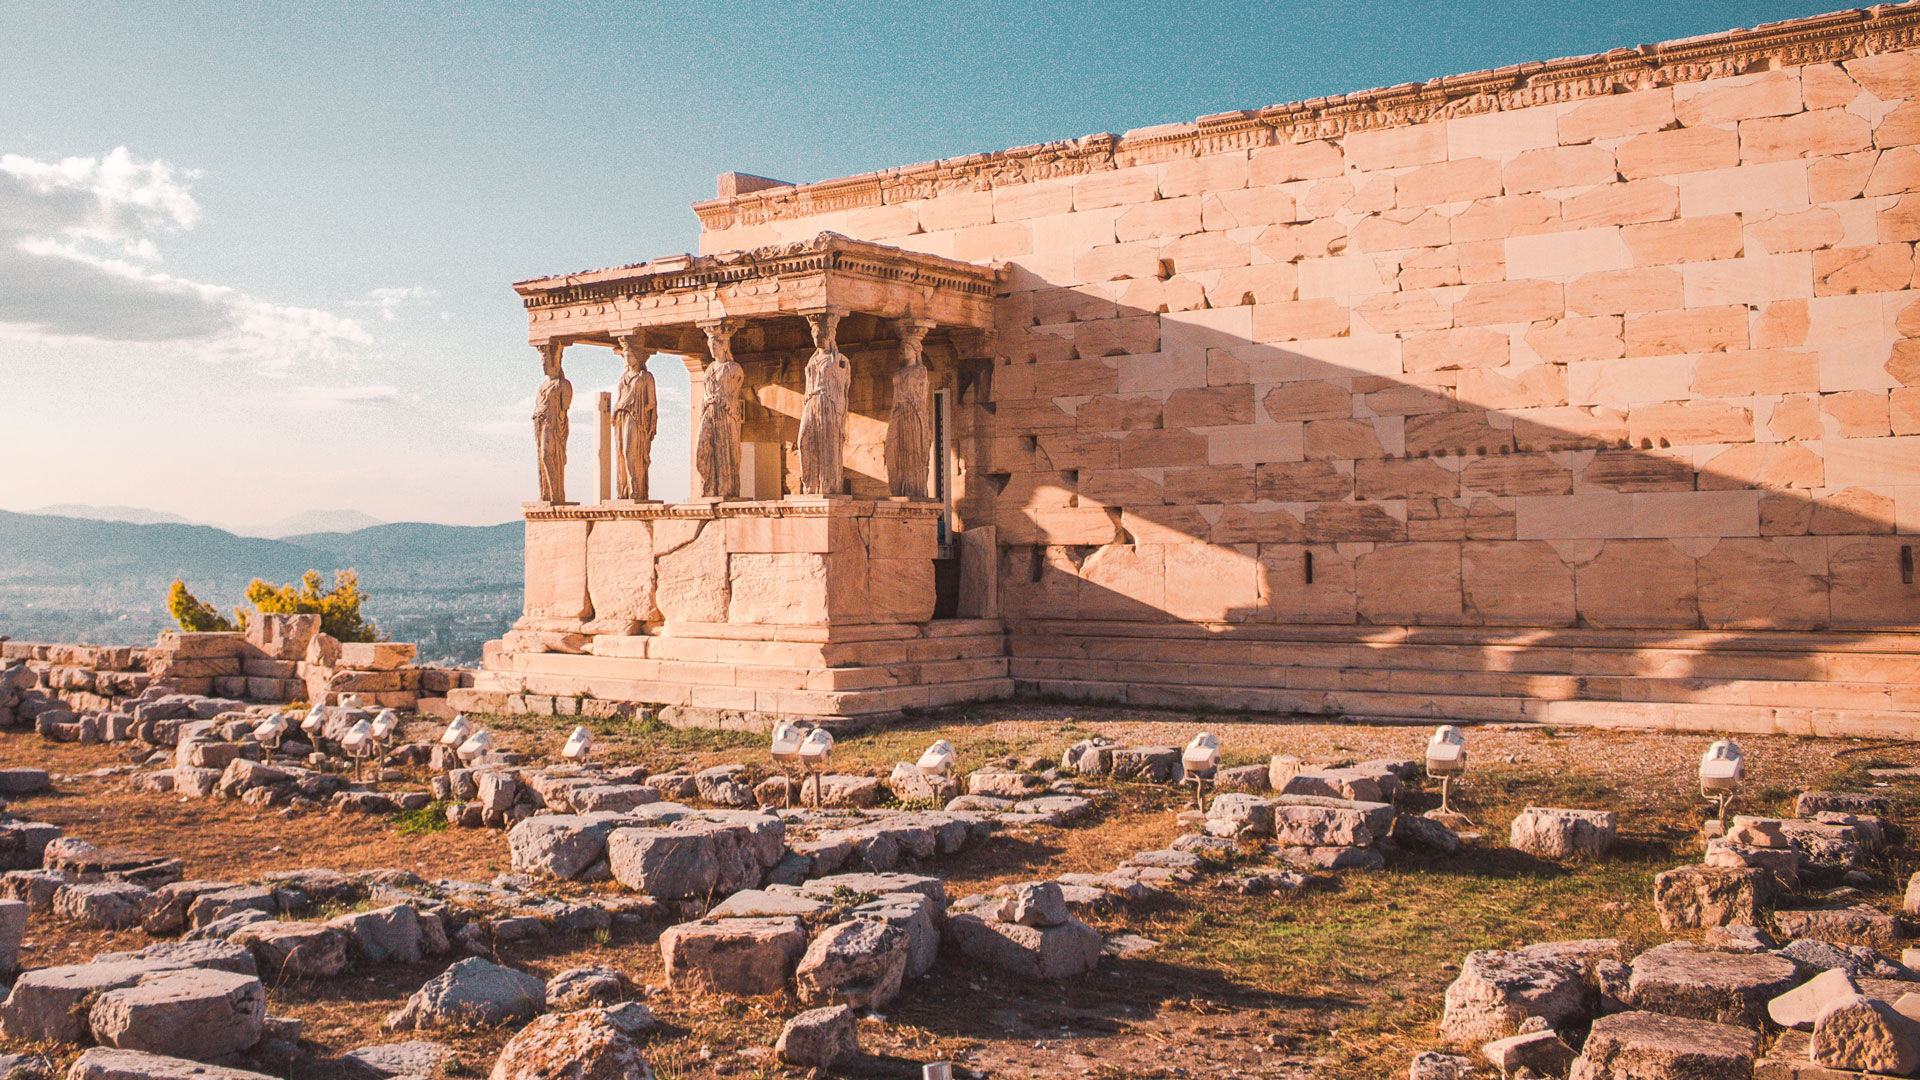 The Erechtheion, a temple dedicated to both Athena and Poseidon